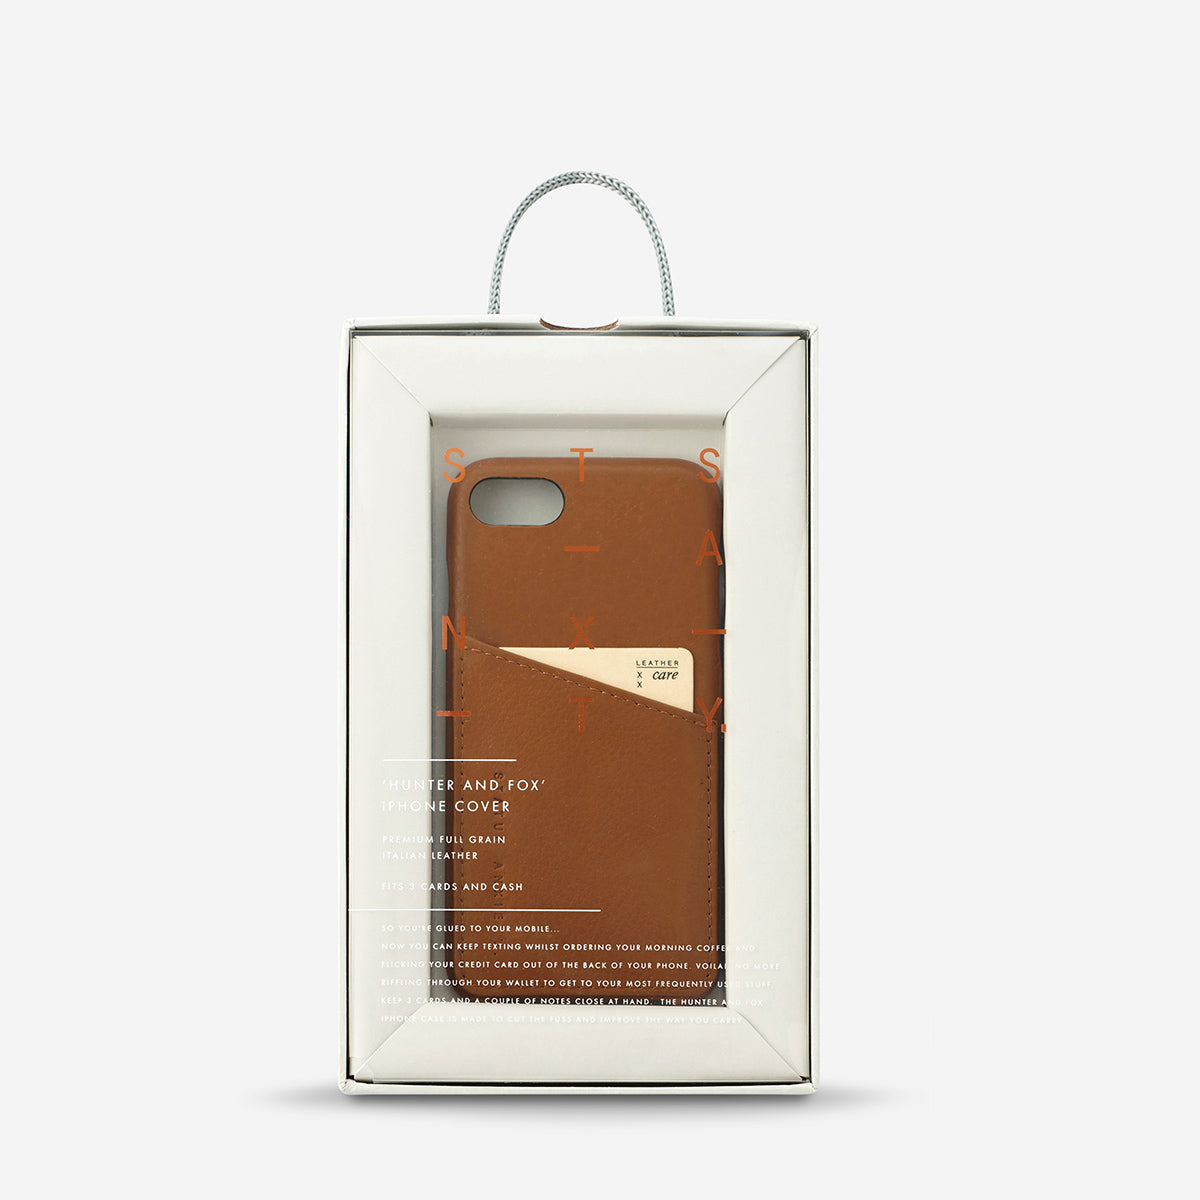 Status Anxiety Hunter and Fox Leather Phone Case Tan